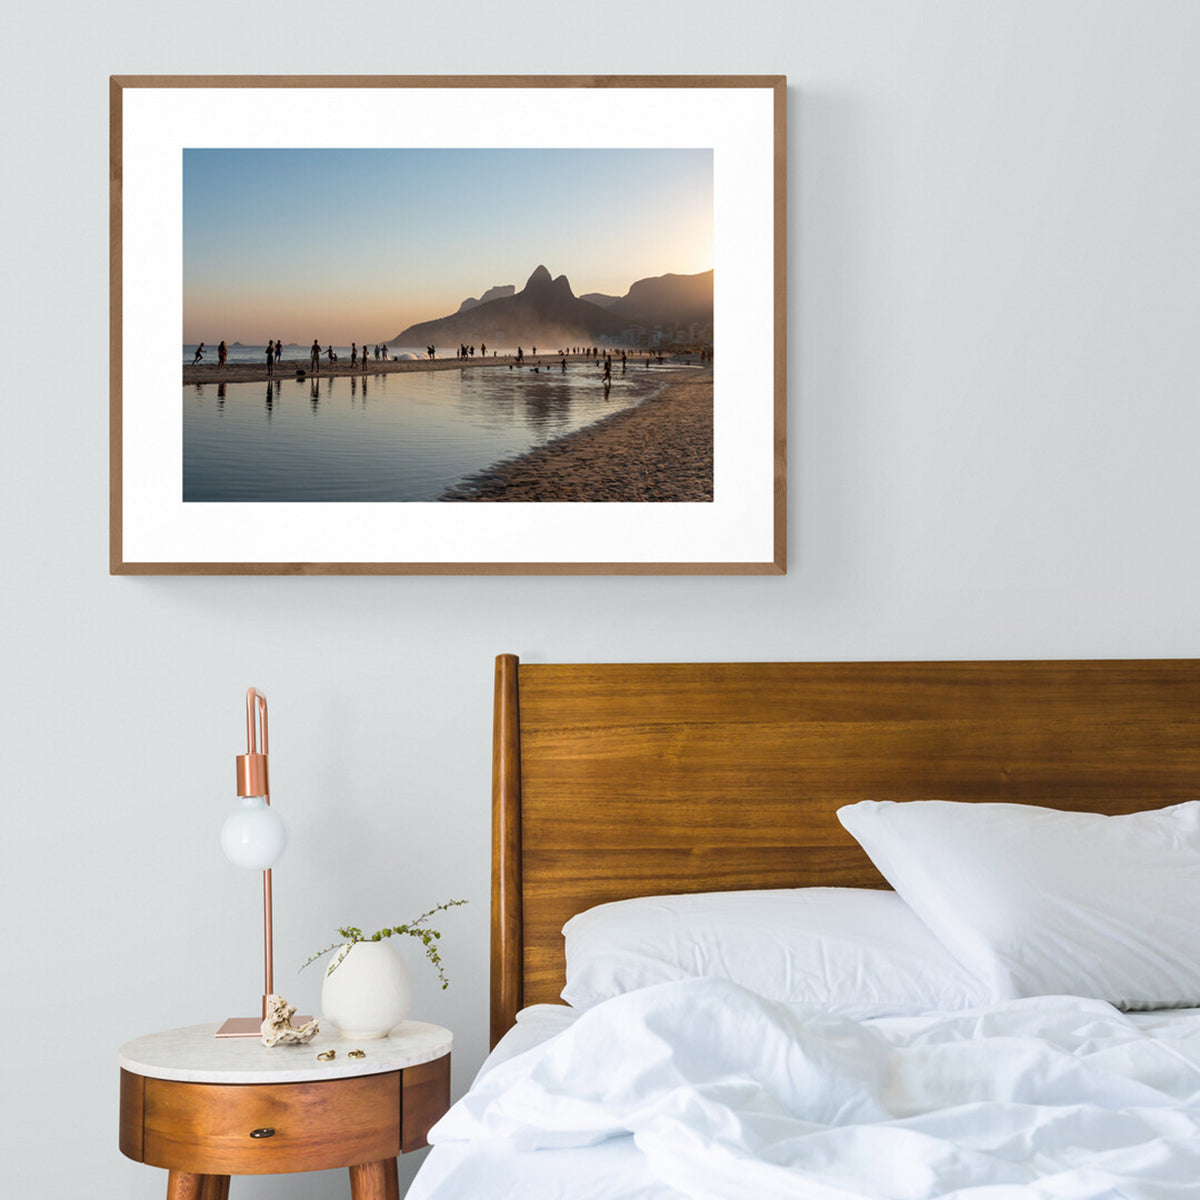 Mounted and framed Photograph  of silhouettes at sunset on Ipanema Beach in a bedroom setting